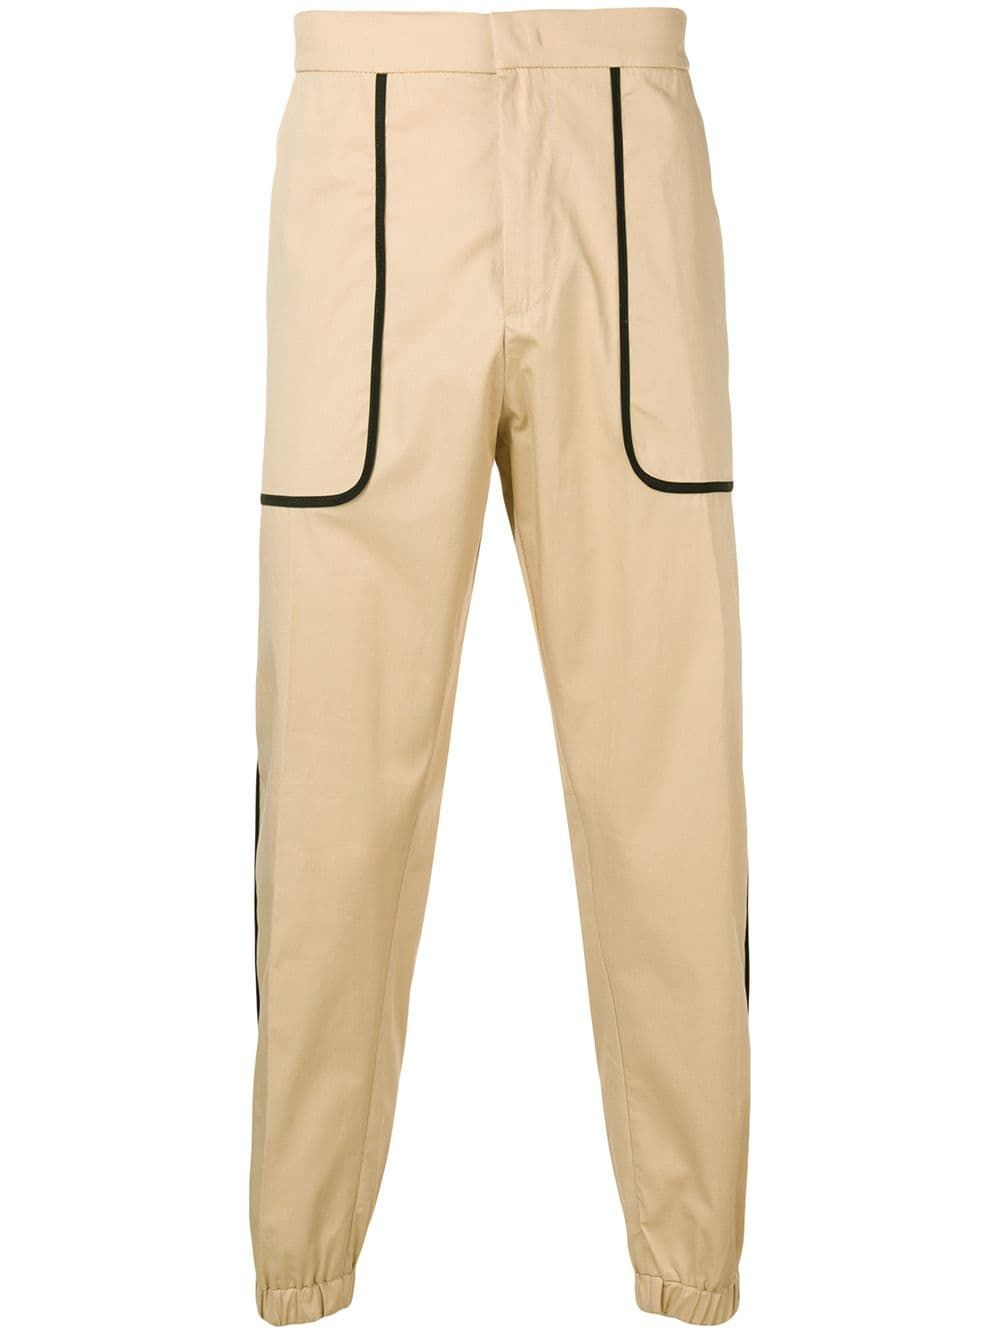 8d8fc00b822e0 Dondup pocket detail joggers - Neutrals in 2019 | Products | Pocket ...